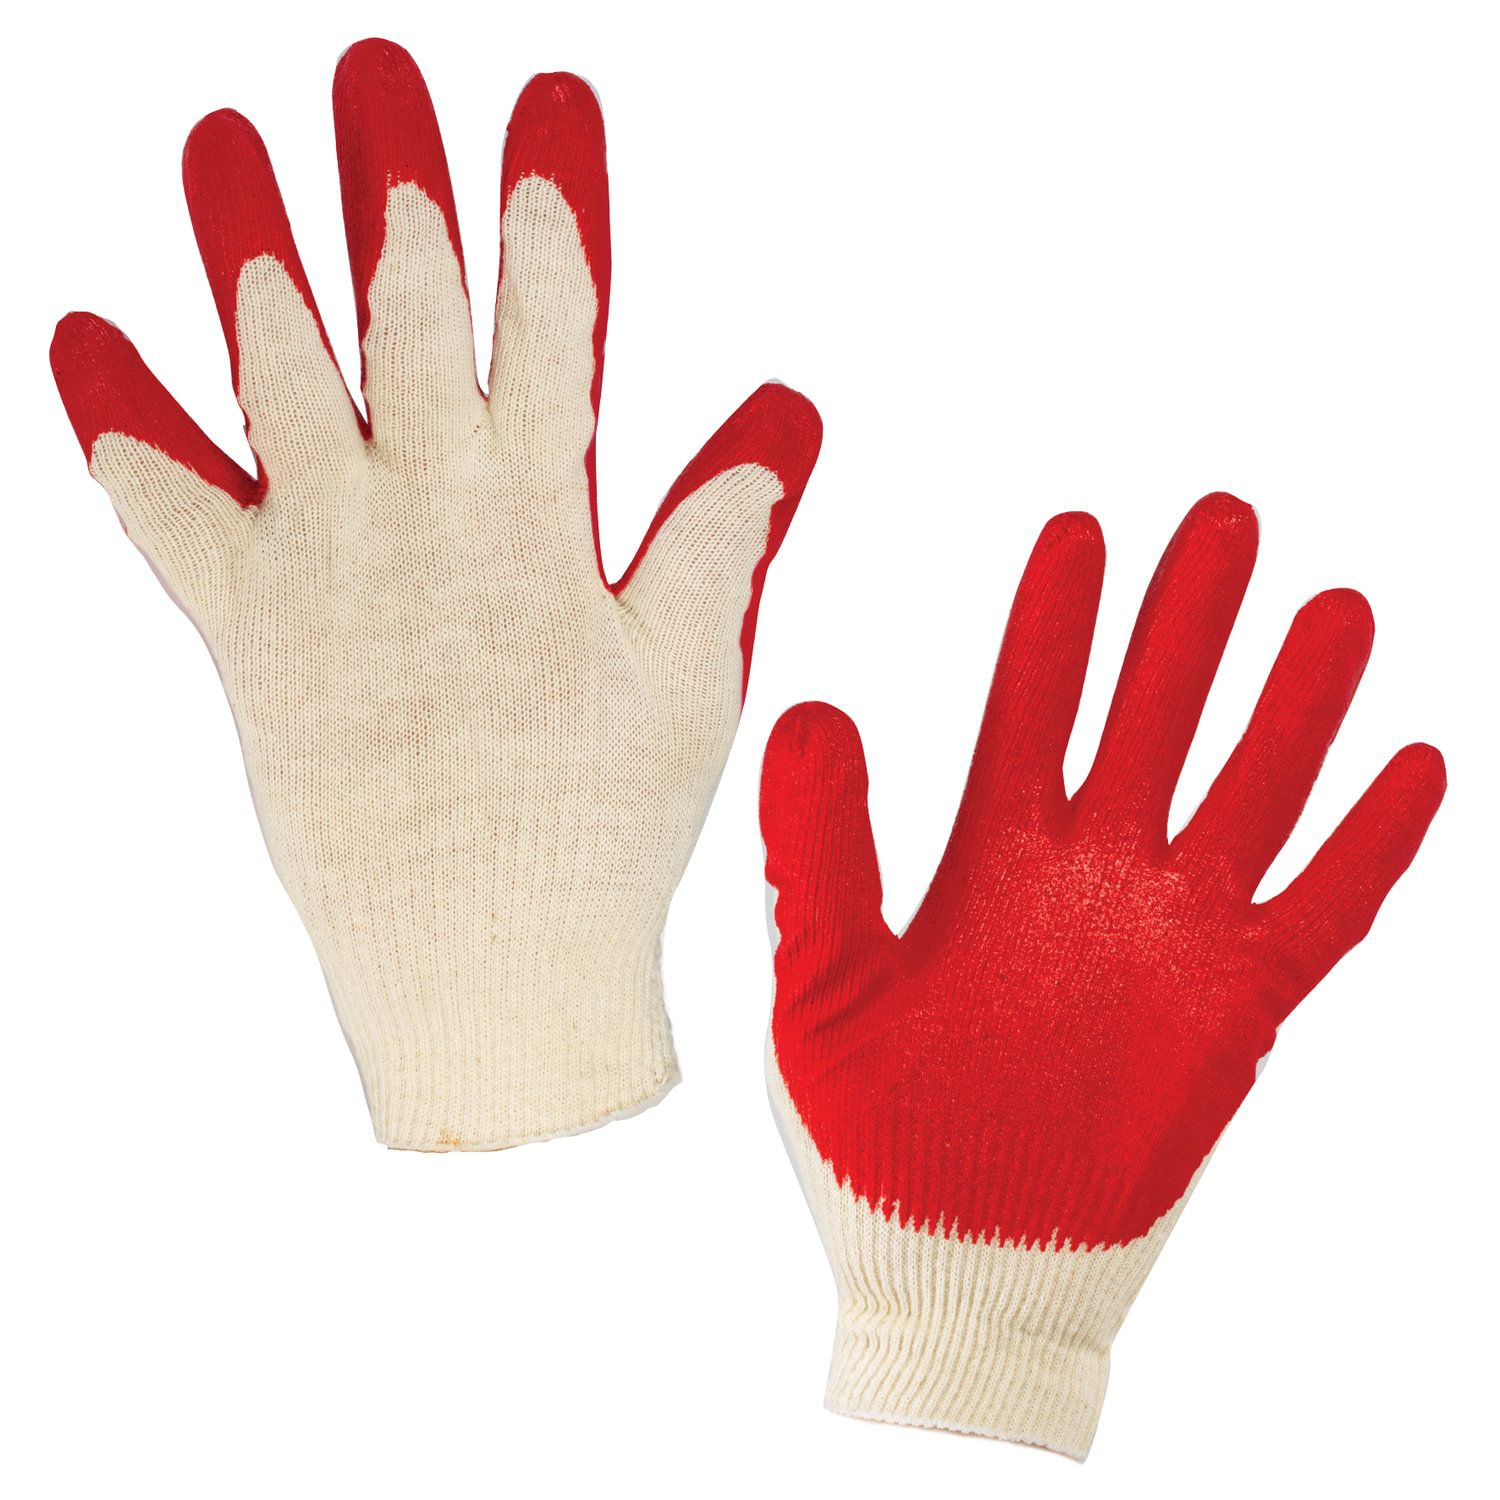 LIMA / Cotton gloves LUX, SET 5 PAIRS, 13 class, 36-38 g, 100 tex, SINGLE latex coating